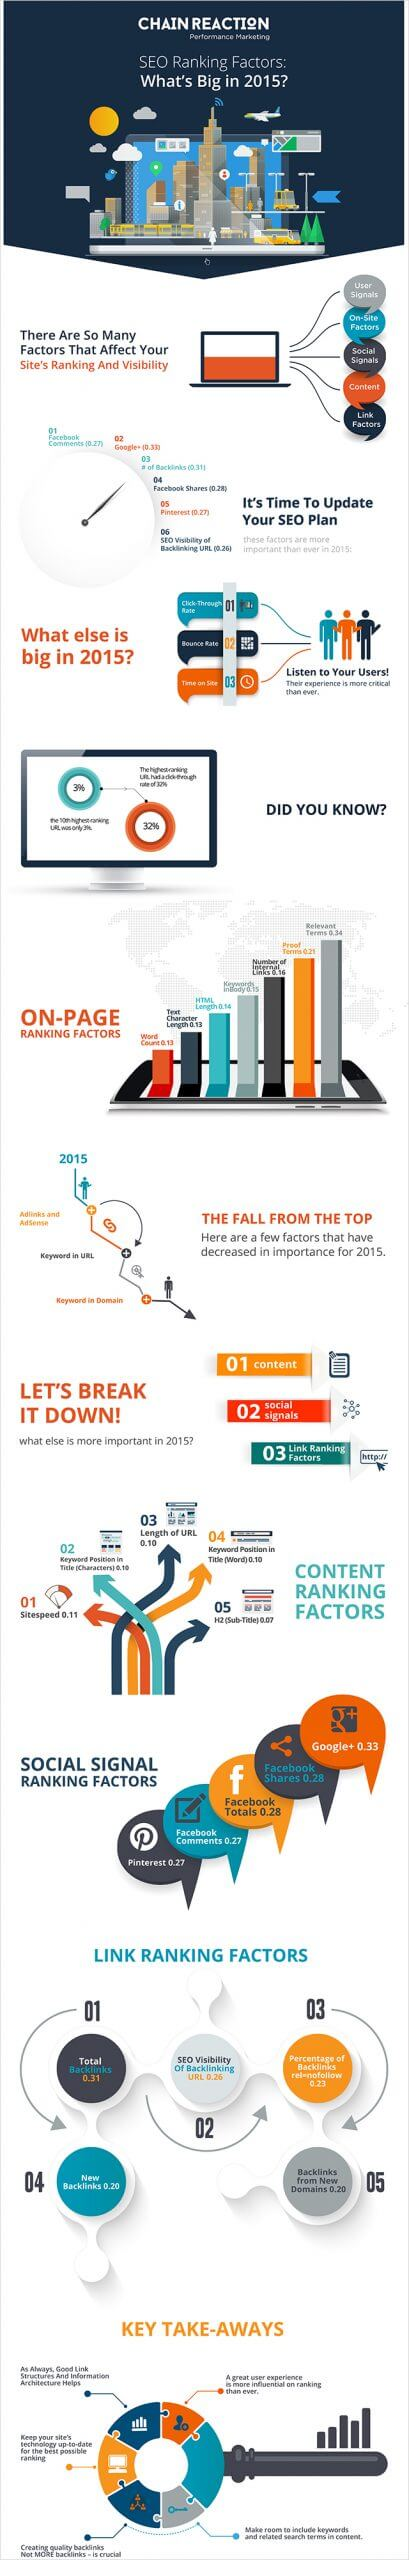 SEO-Ranking-Factors--What's-Big-in-2015_-_One-page-small